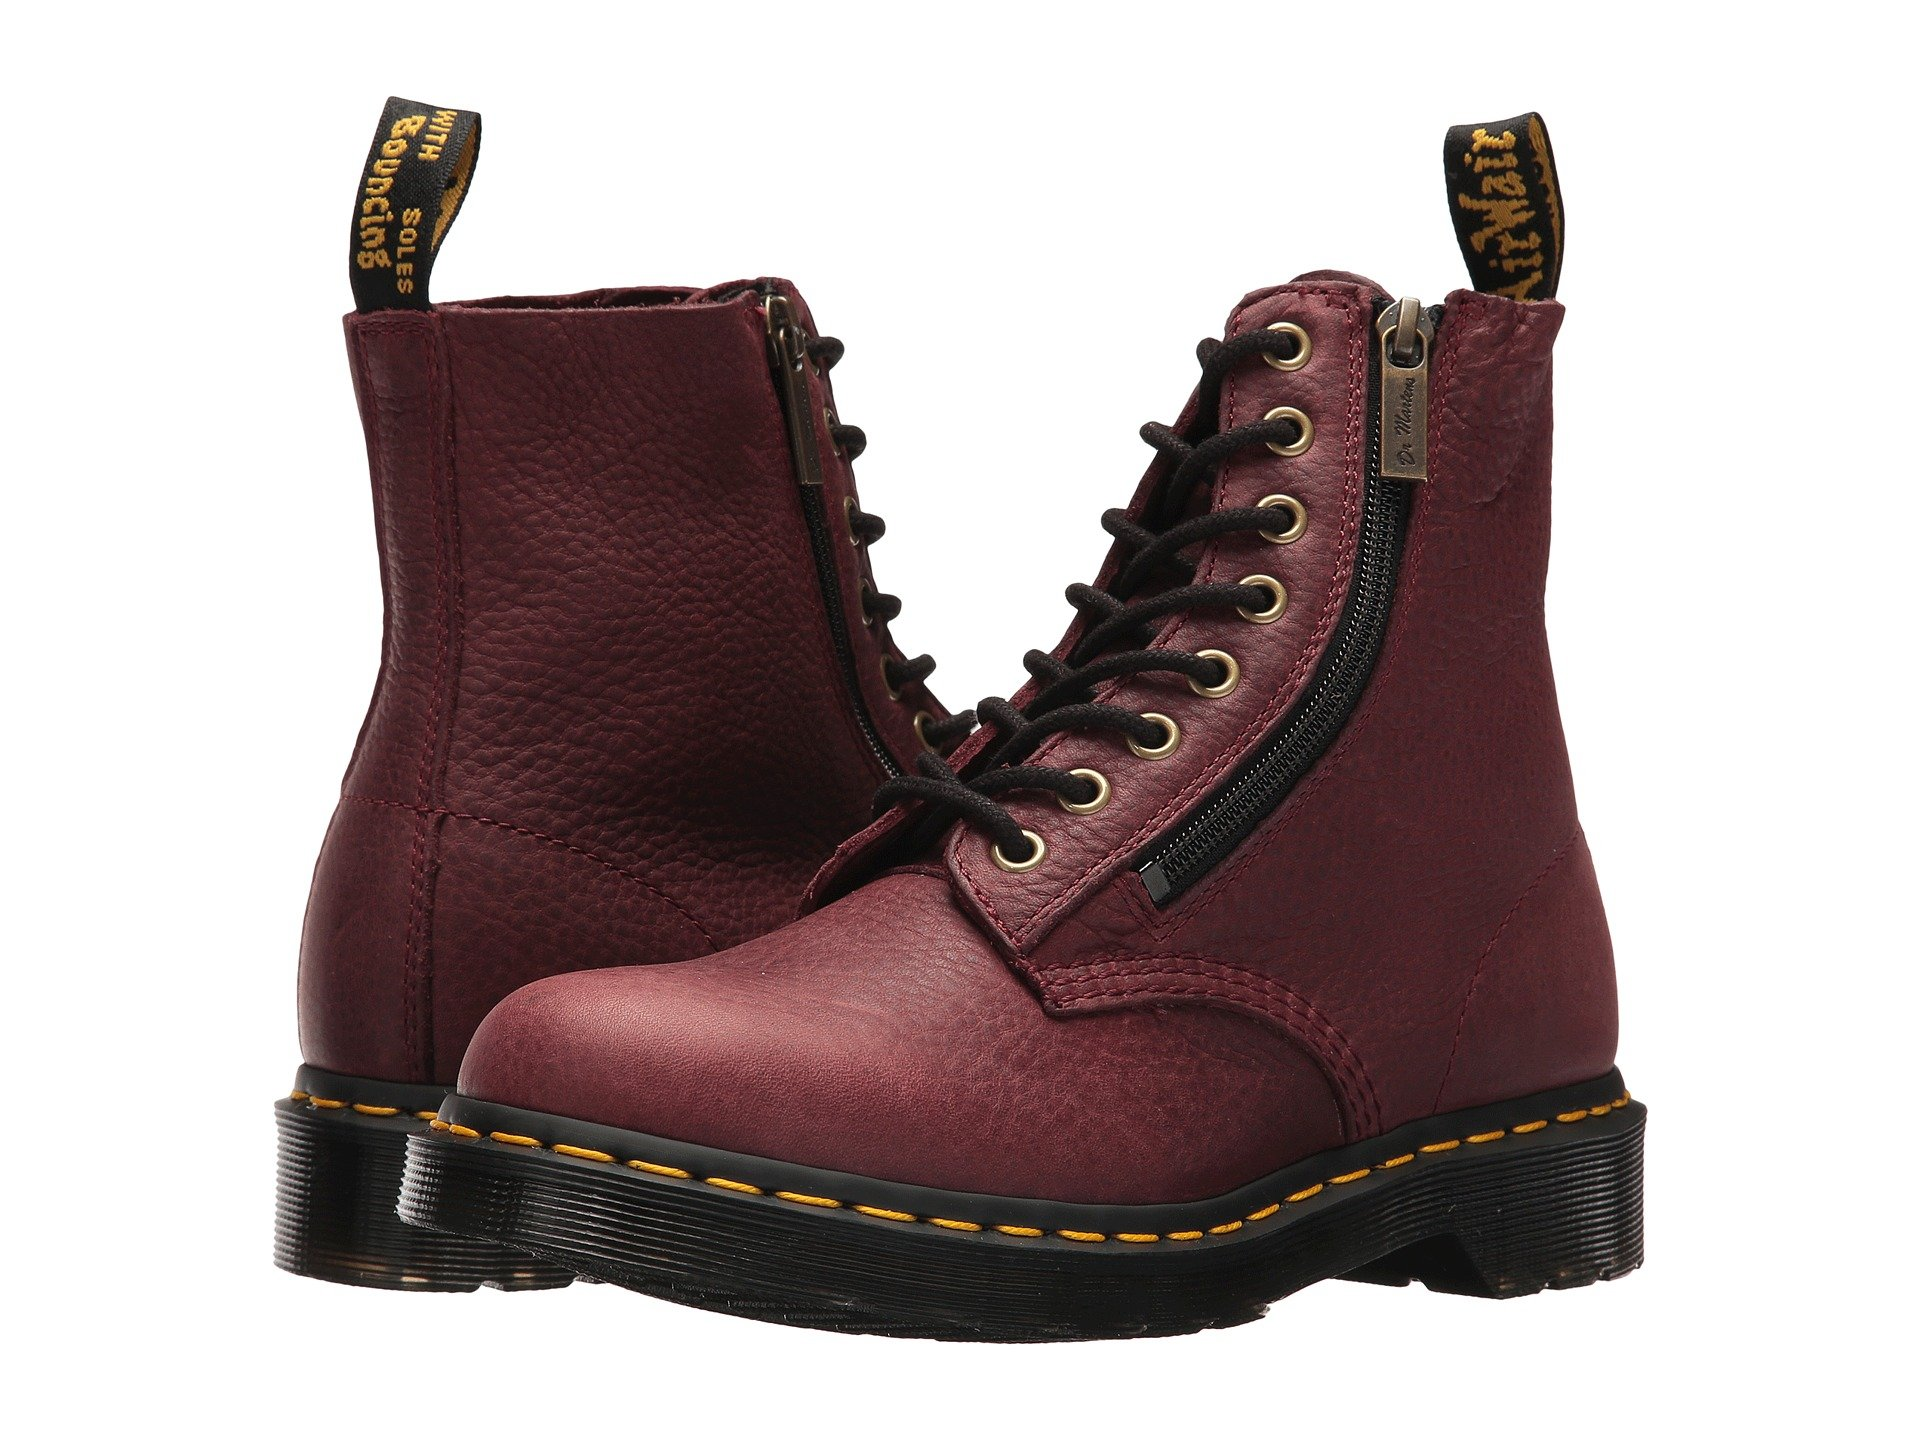 Dr. Martens Women's Pascal w/Zip in Grizzly (Bovine) Leather Fashion Boot